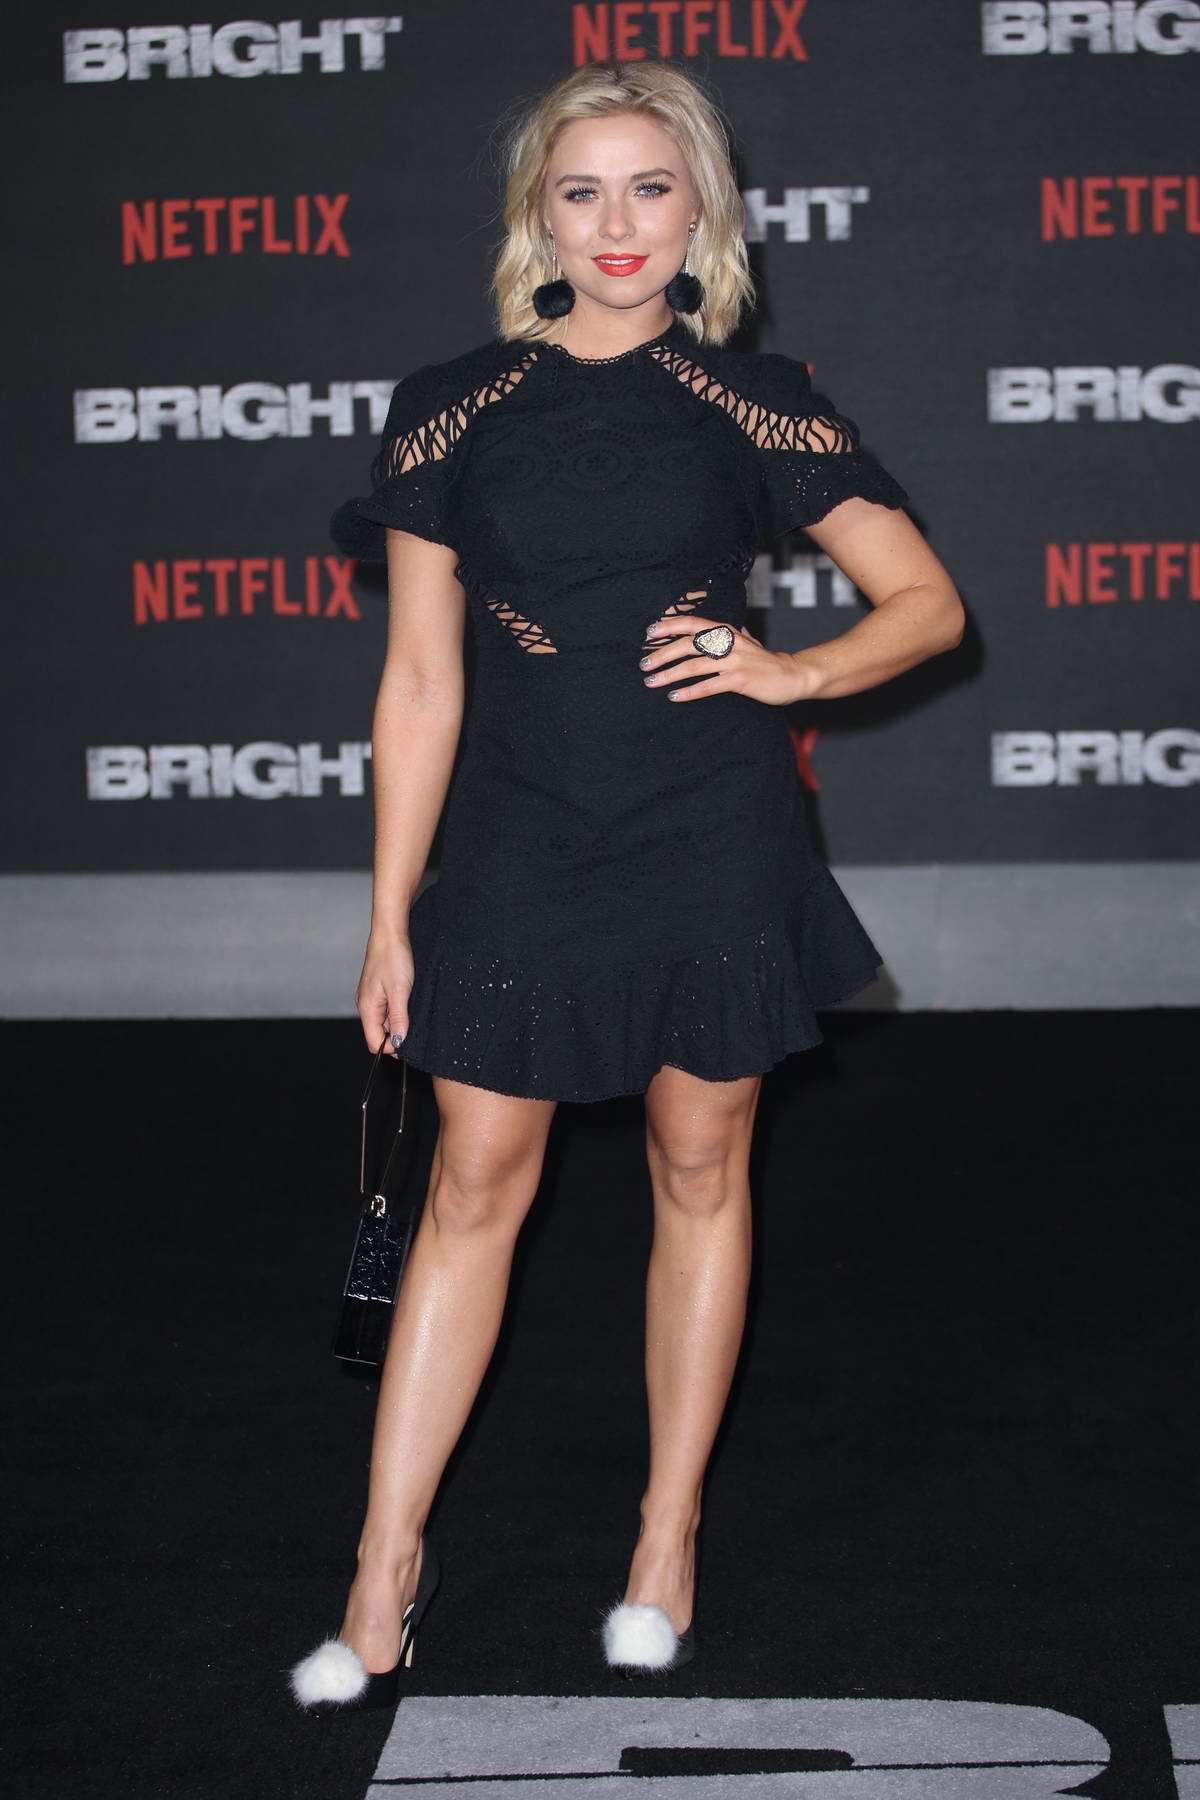 Gabby Allen at UK film premiere of 'Bright' held at BFI Southbank in London